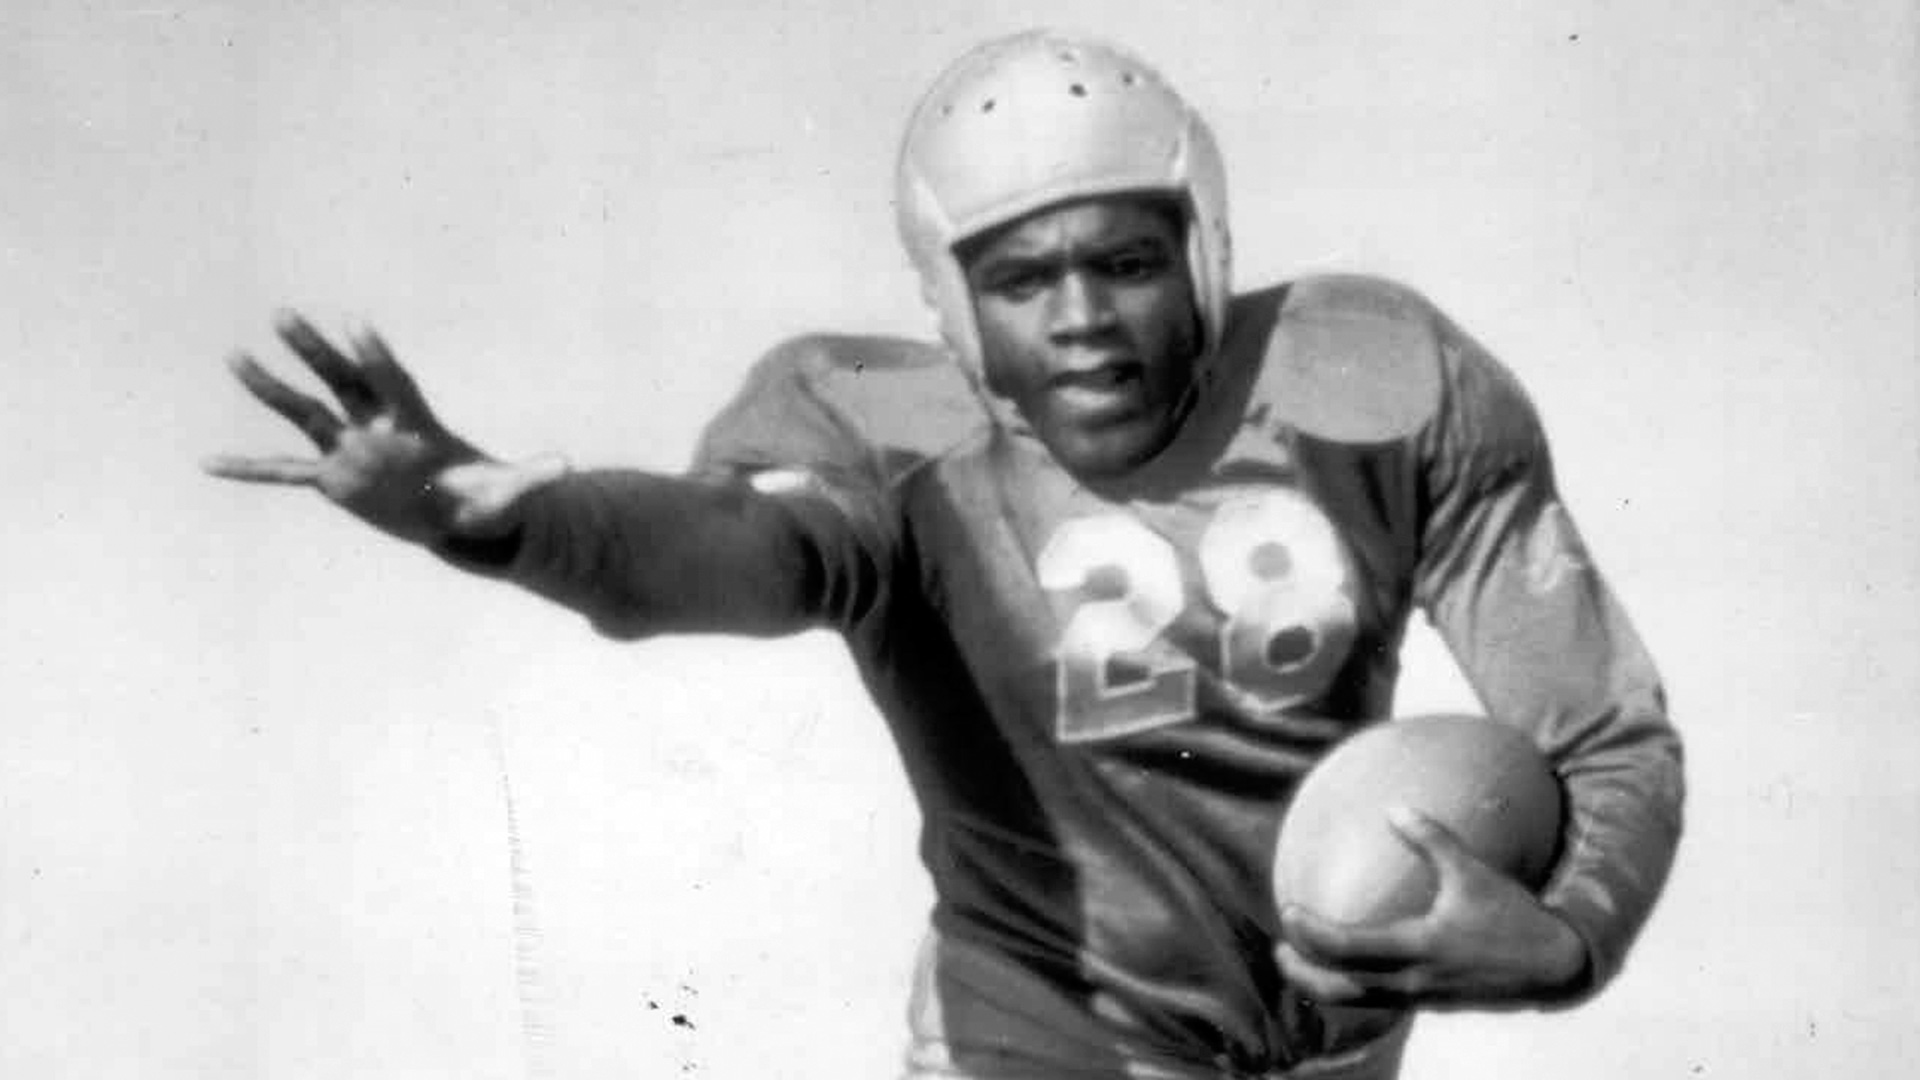 NFL could have been the sport celebrating Jackie Robinson Day   NFL   Sporting News